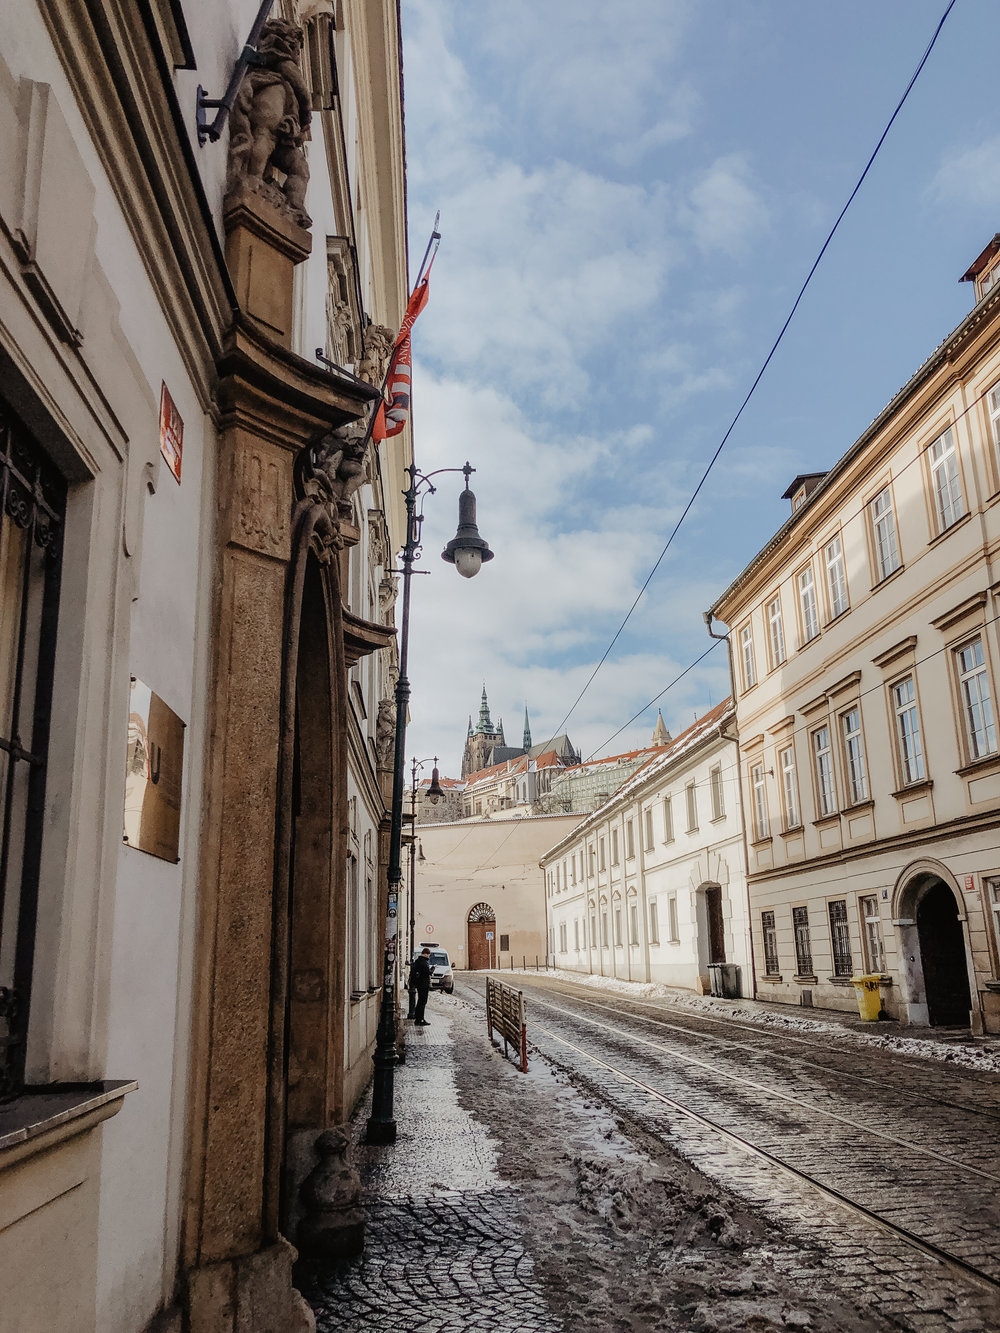 My view of the Prague Castle on the way to class